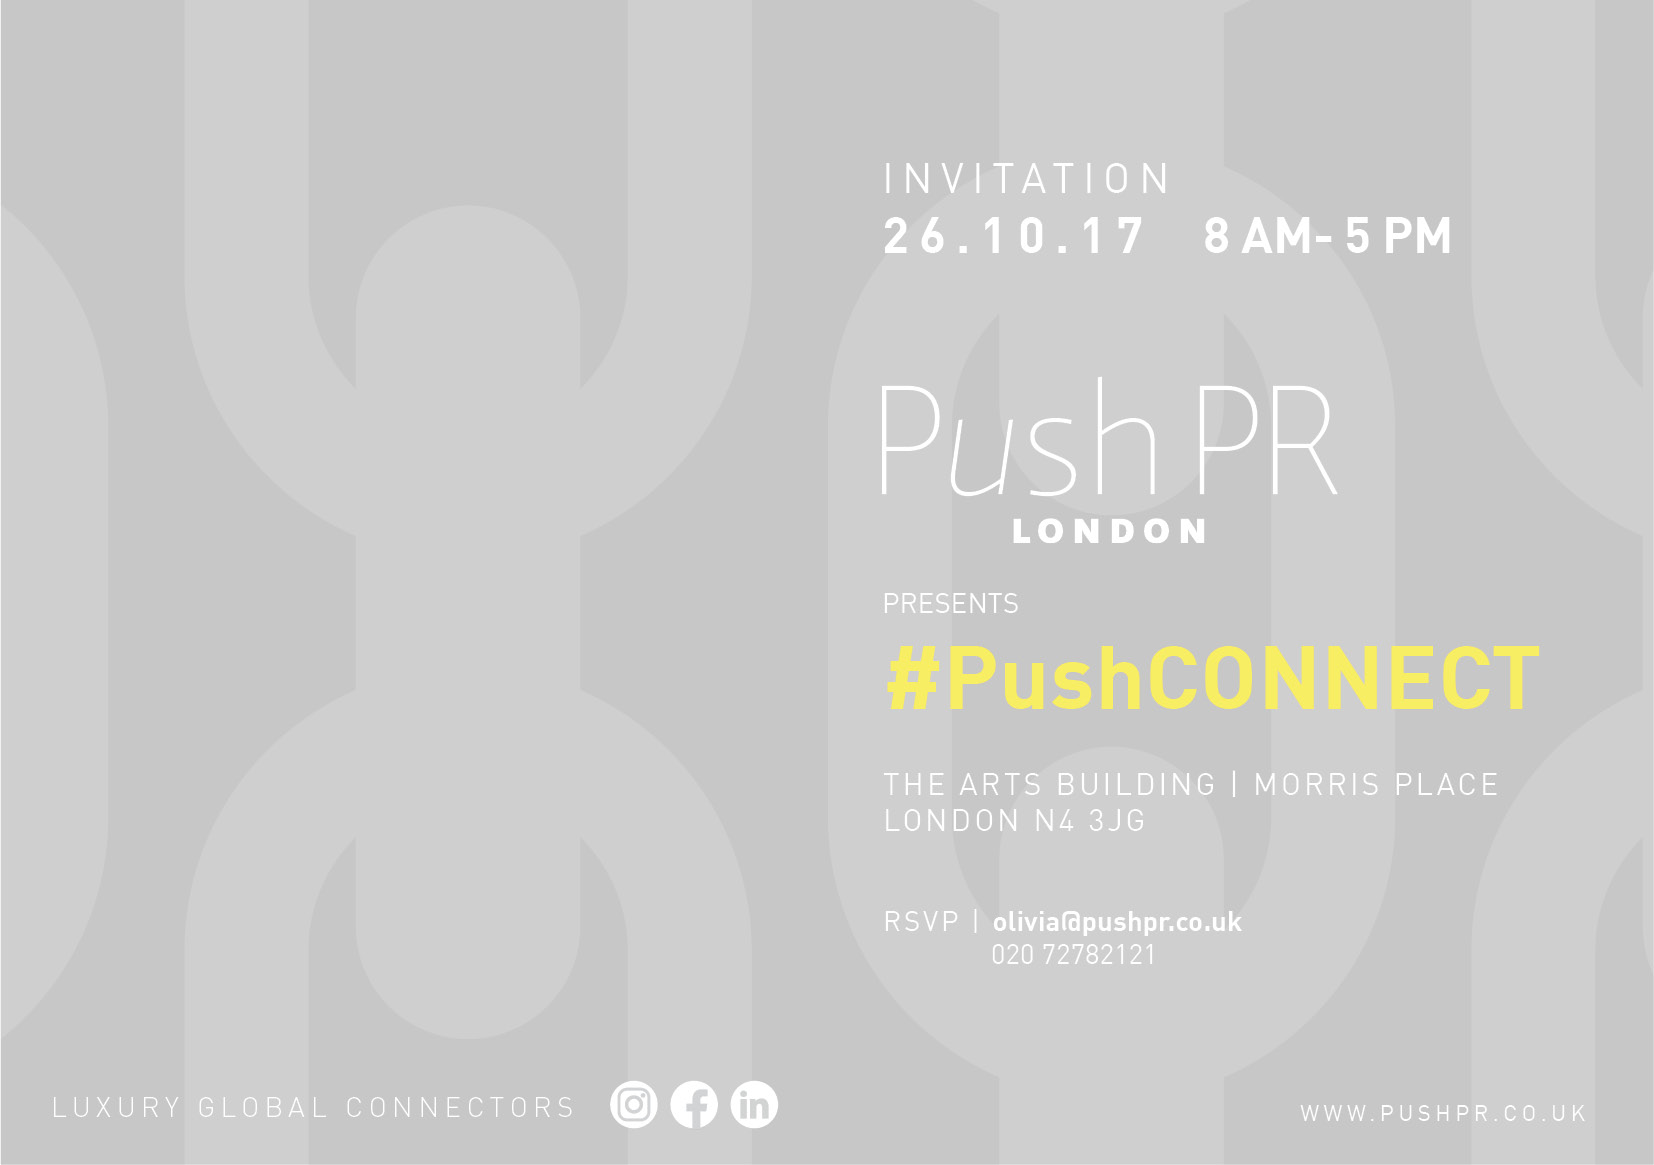 Push PR event #PushCONNECT